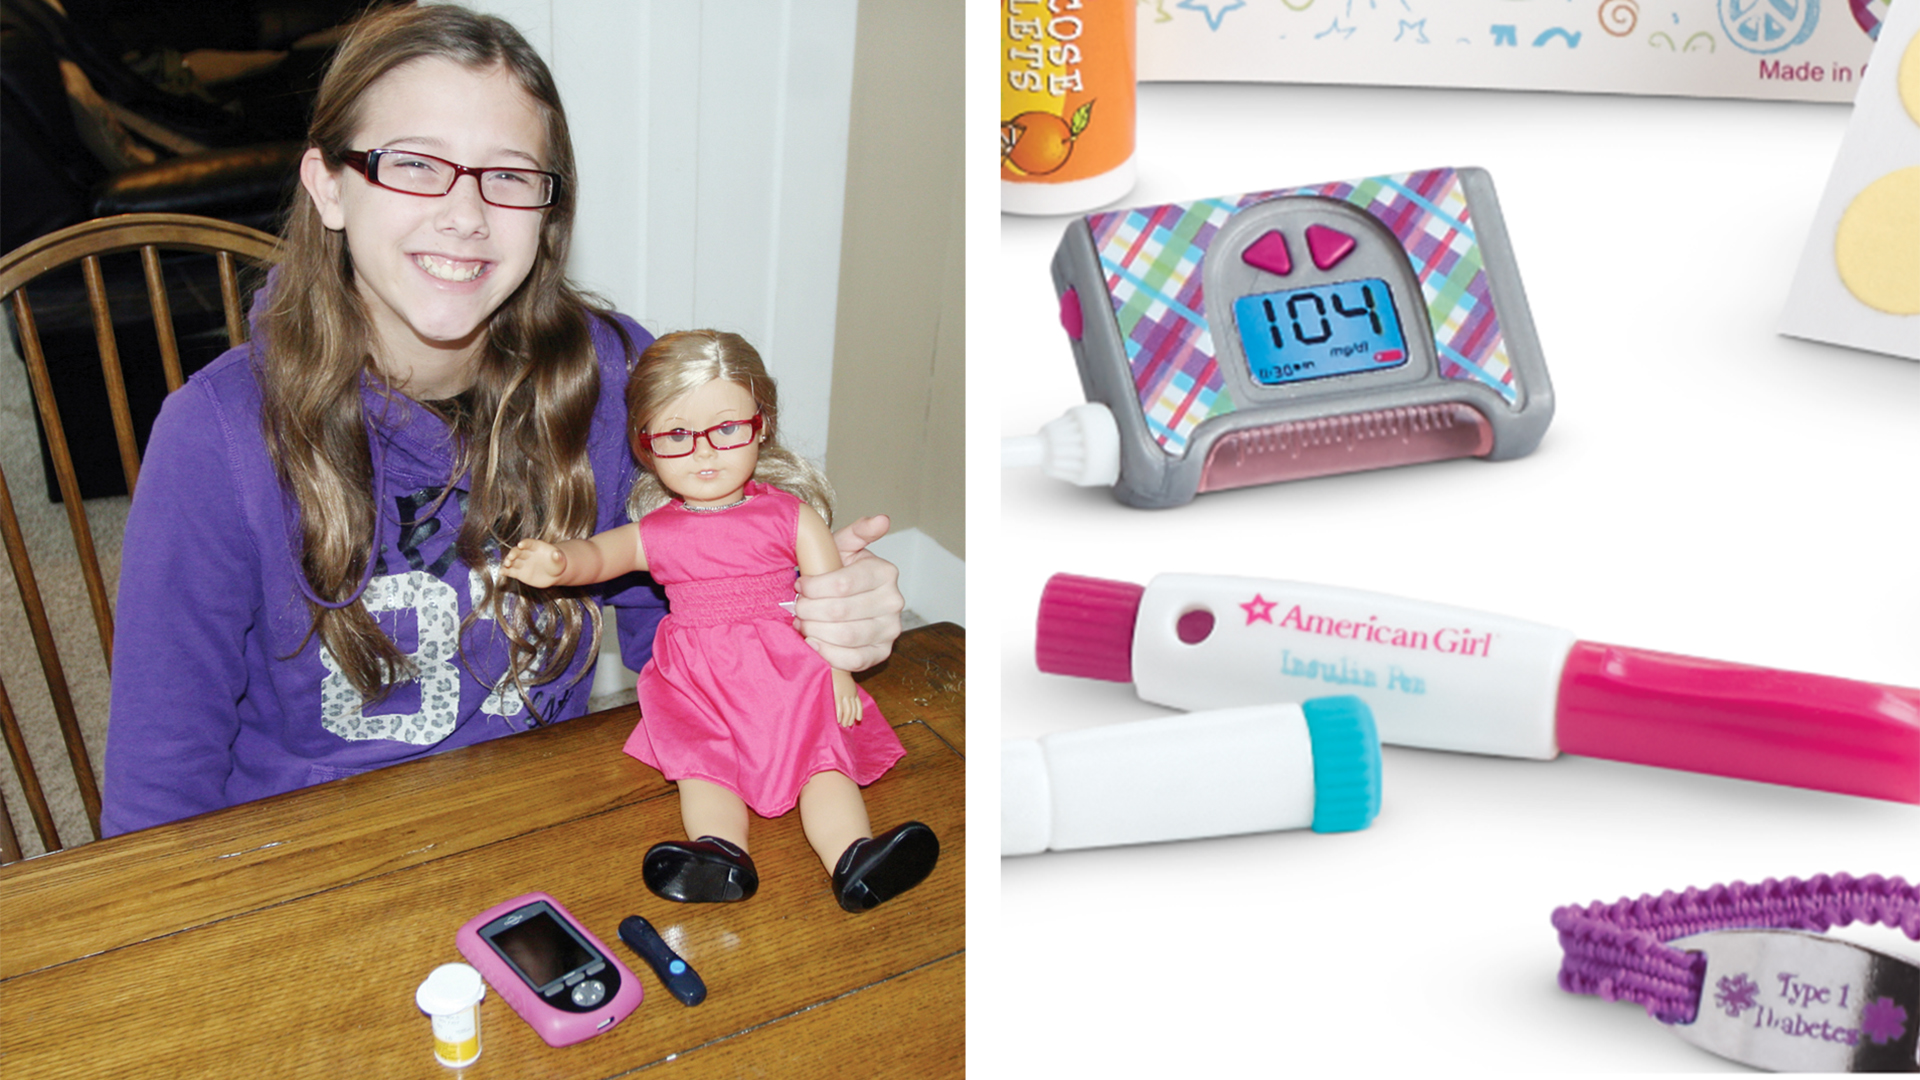 Mattel's American Girl Debuts Diabetes Care Kit For Dolls